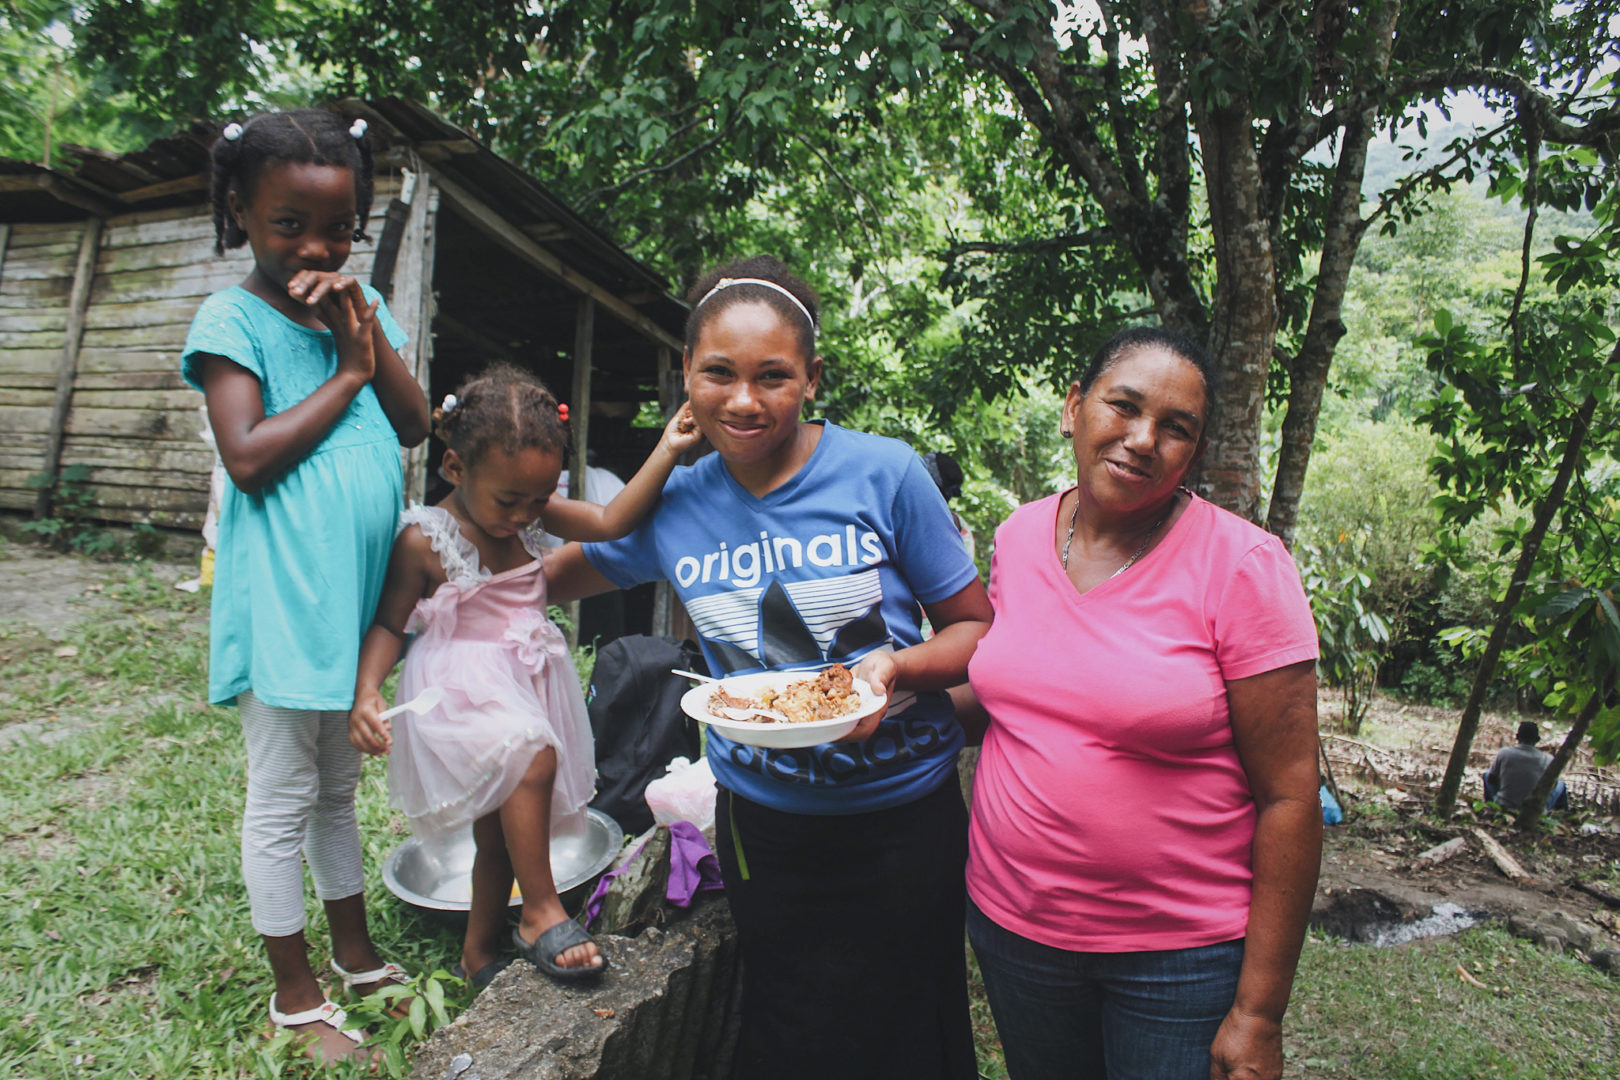 Three generations of women in the Dominican Republic have benefitted from sustainability.